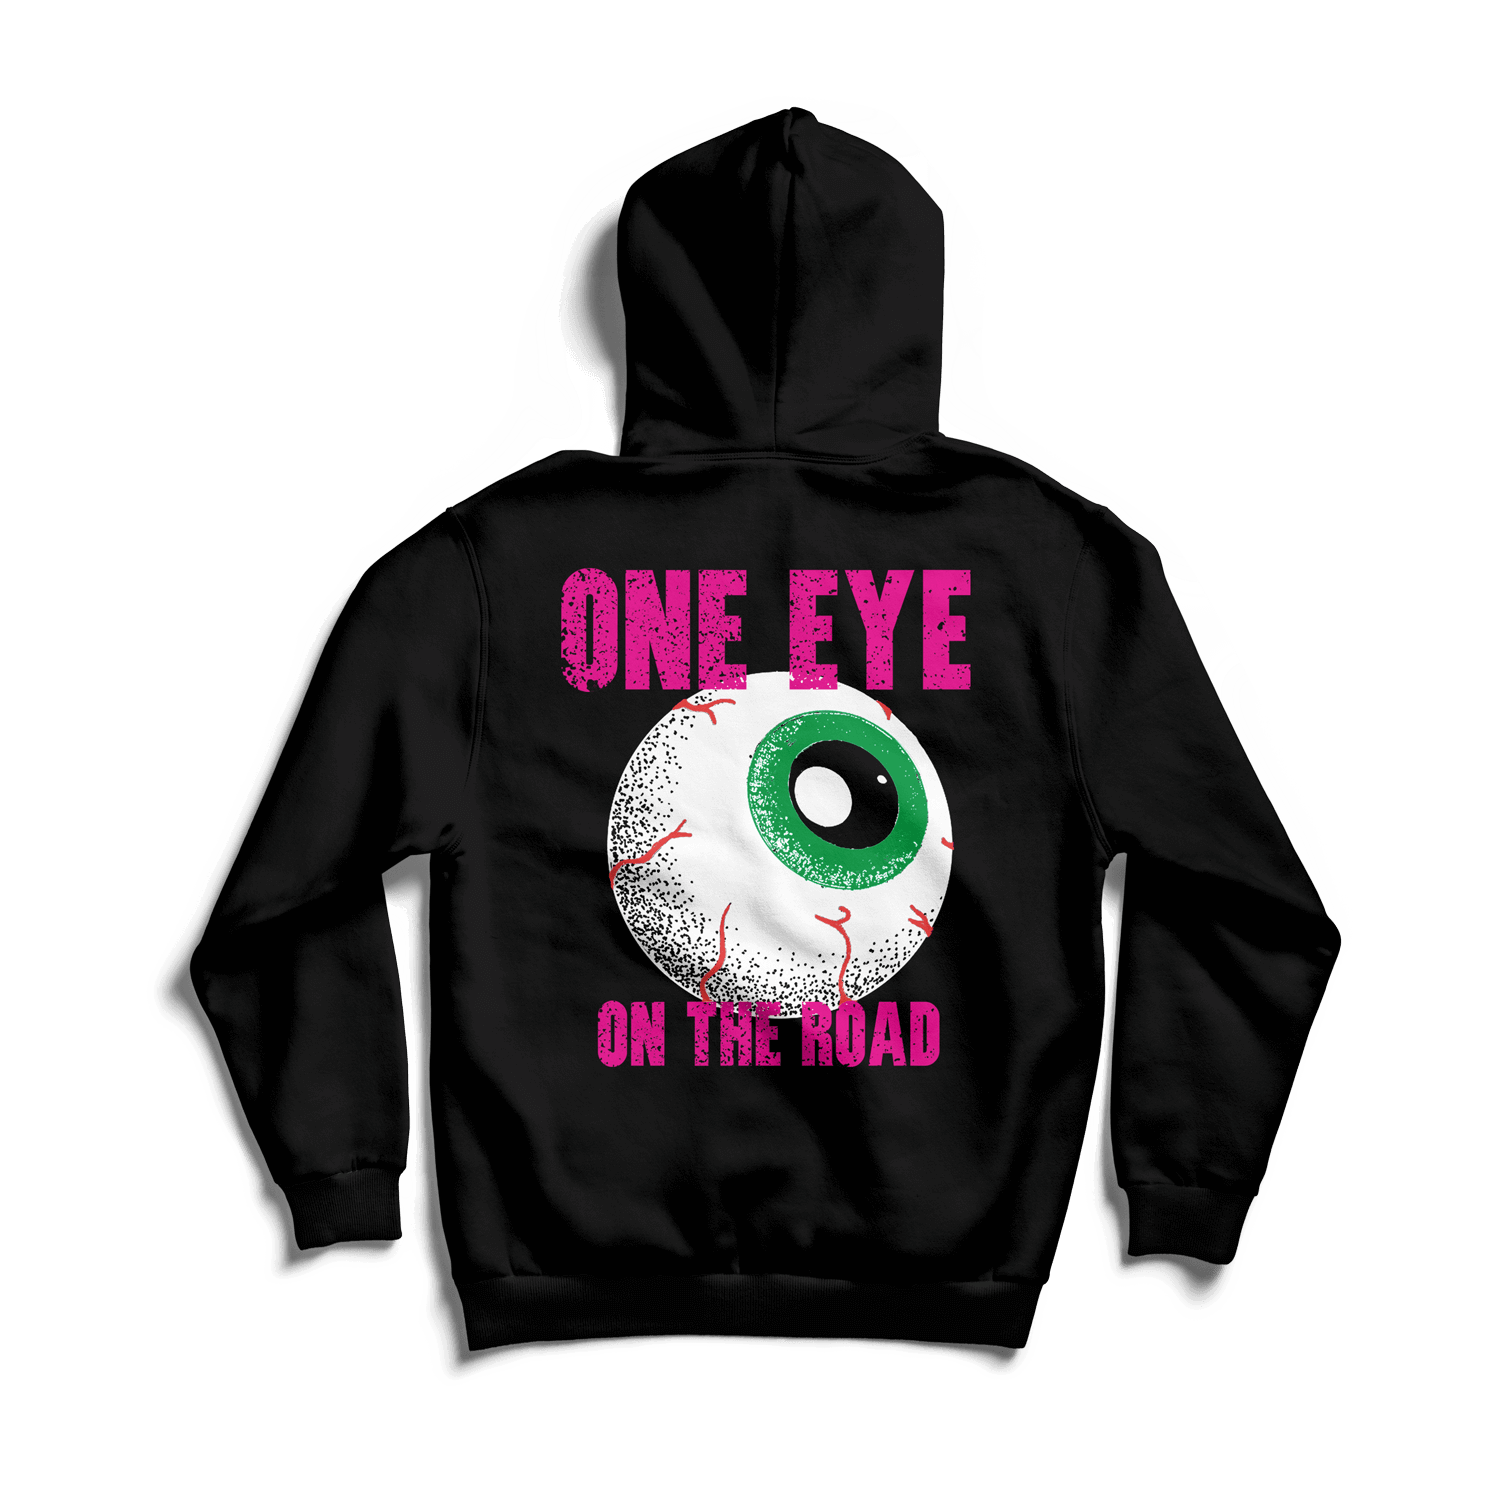 eyeball_sweatshirt_back